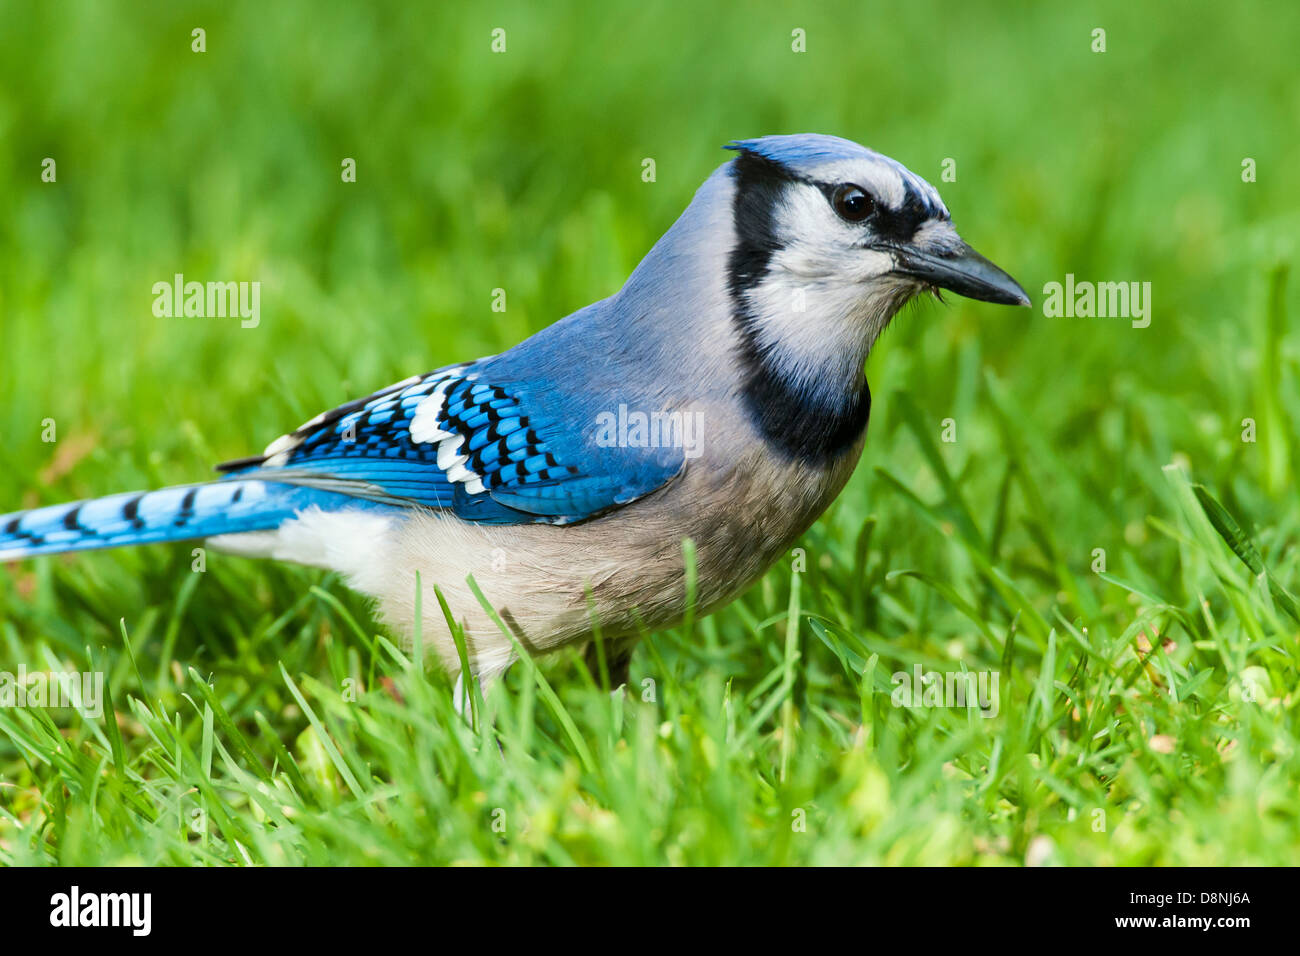 Blue Jay foraging in green grass Stock Photo